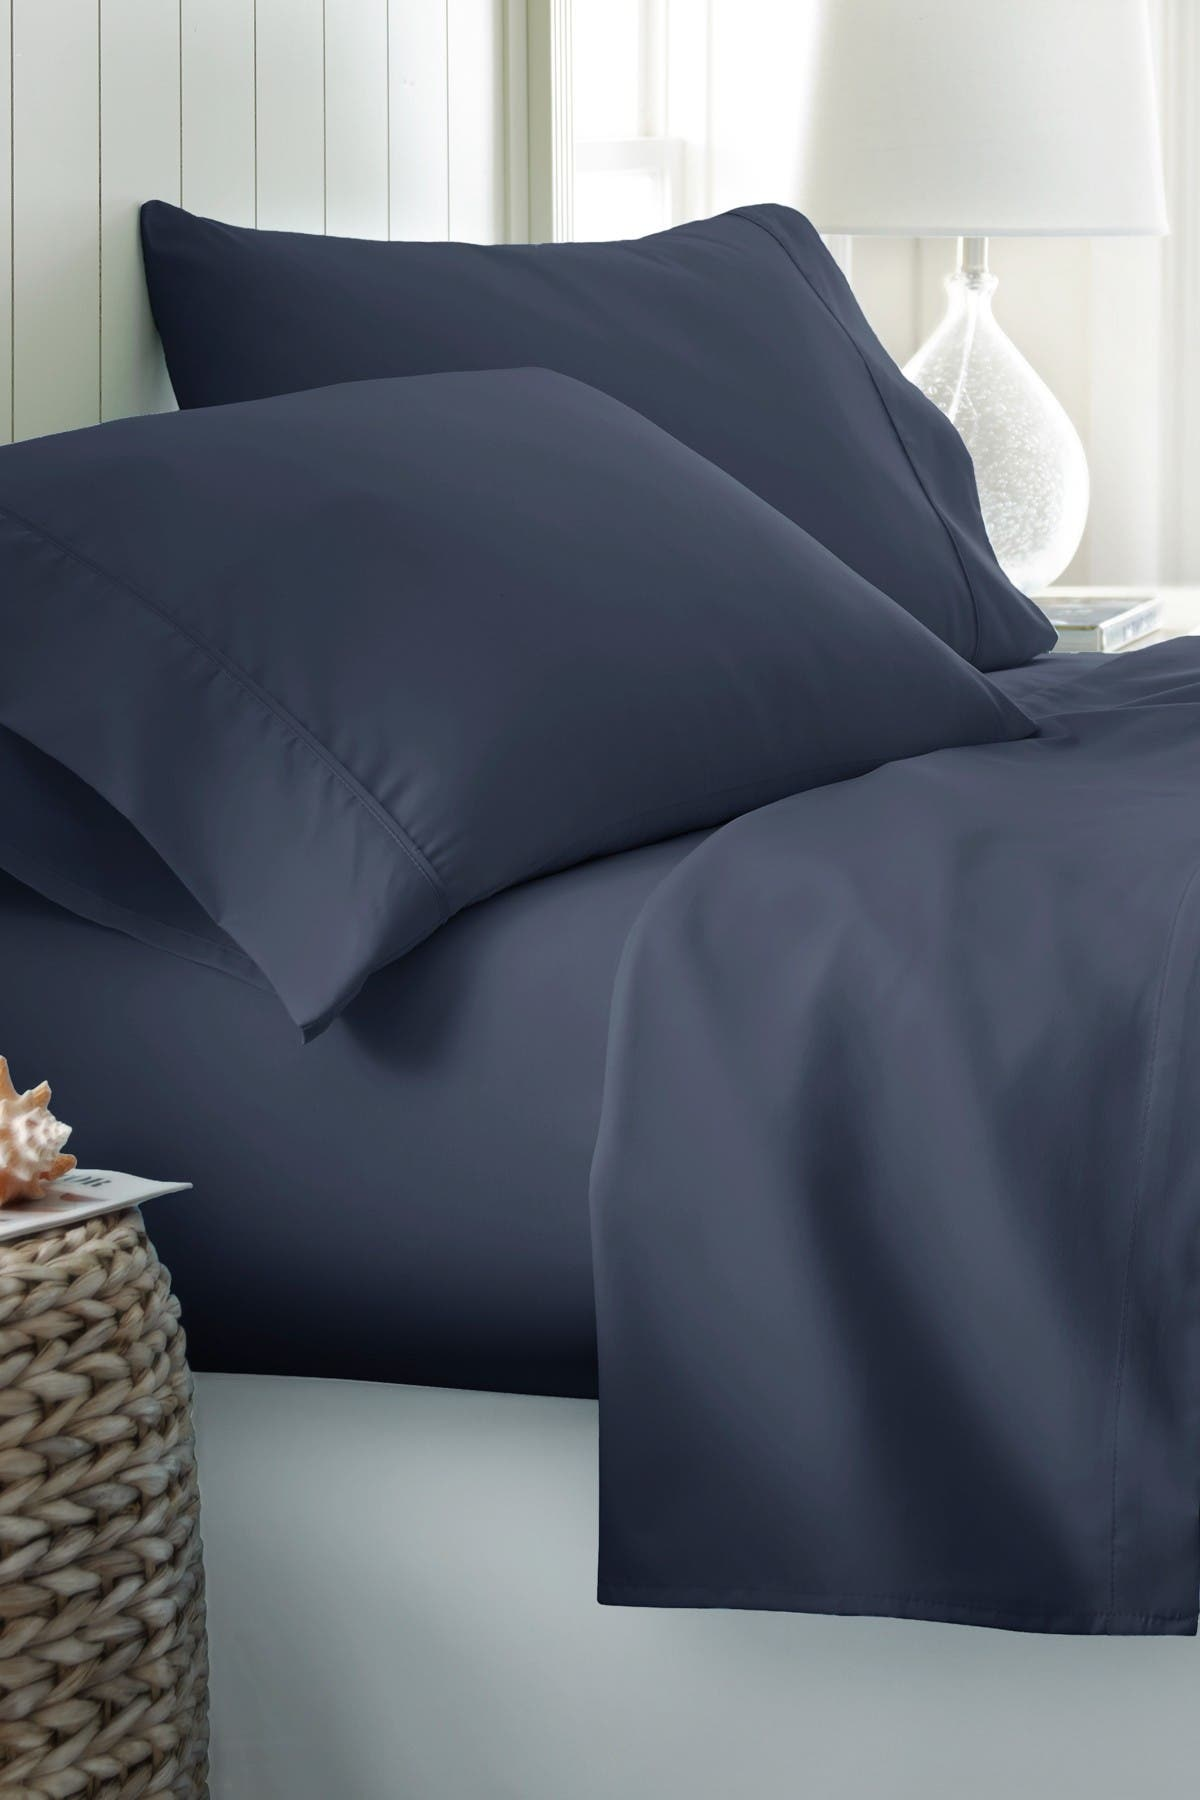 Image of IENJOY HOME Twin Hotel Collection Premium Ultra Soft 3-Piece Bed Sheet Set - Navy